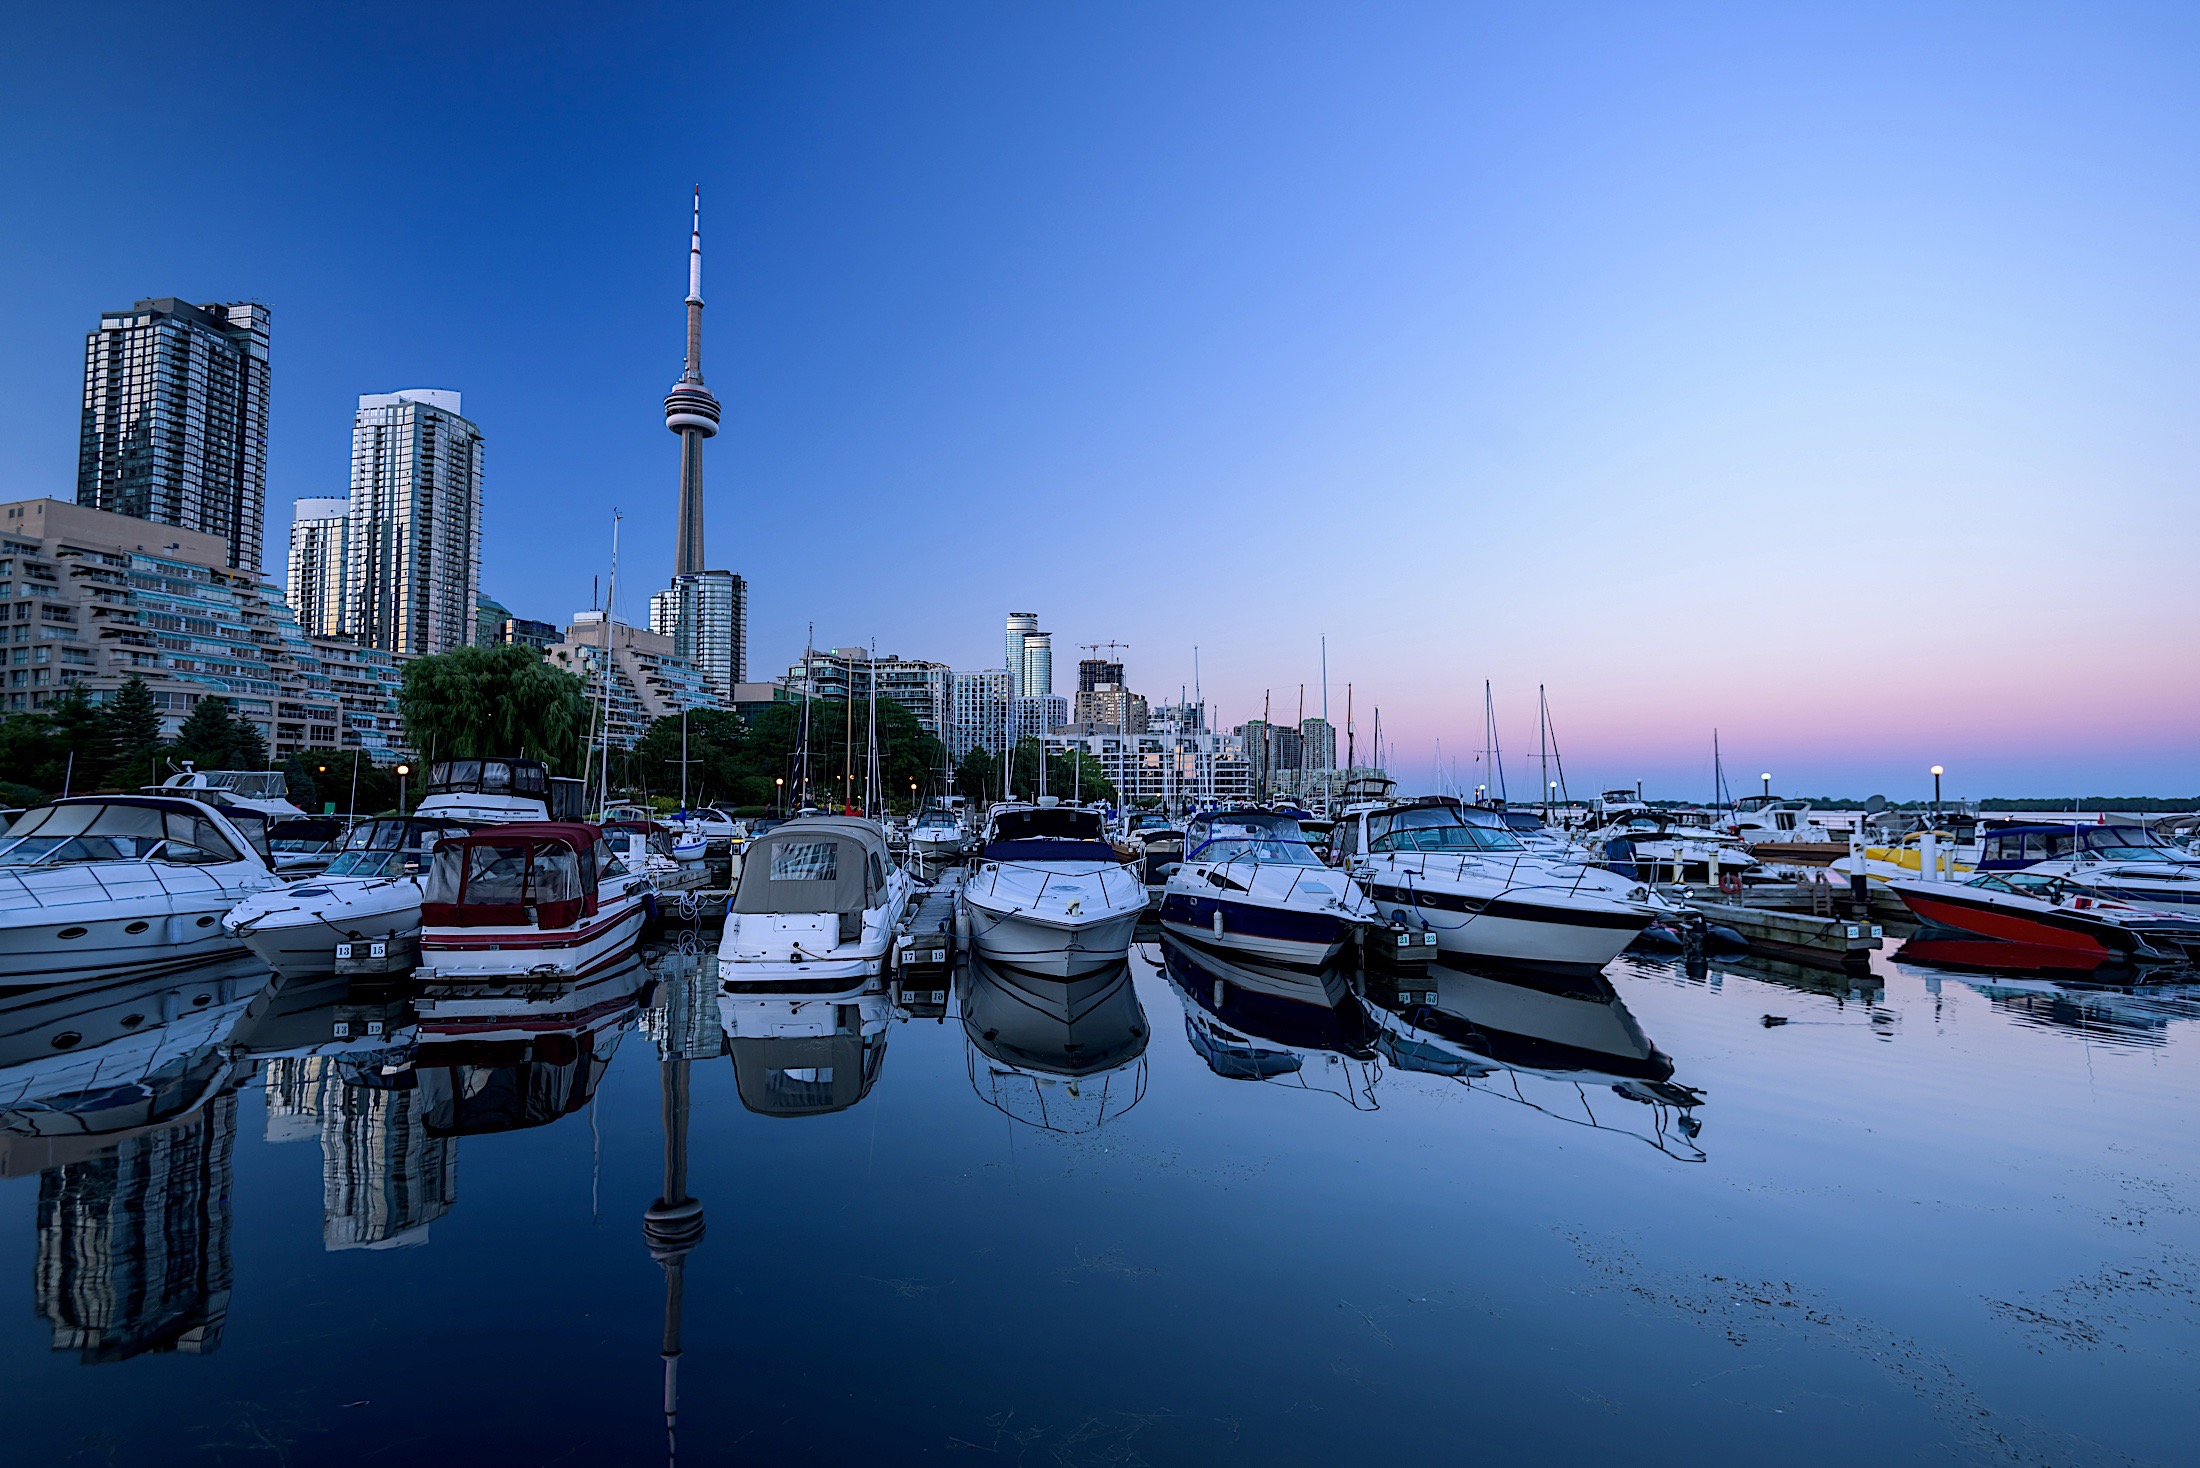 Boats in Toronto Harbor